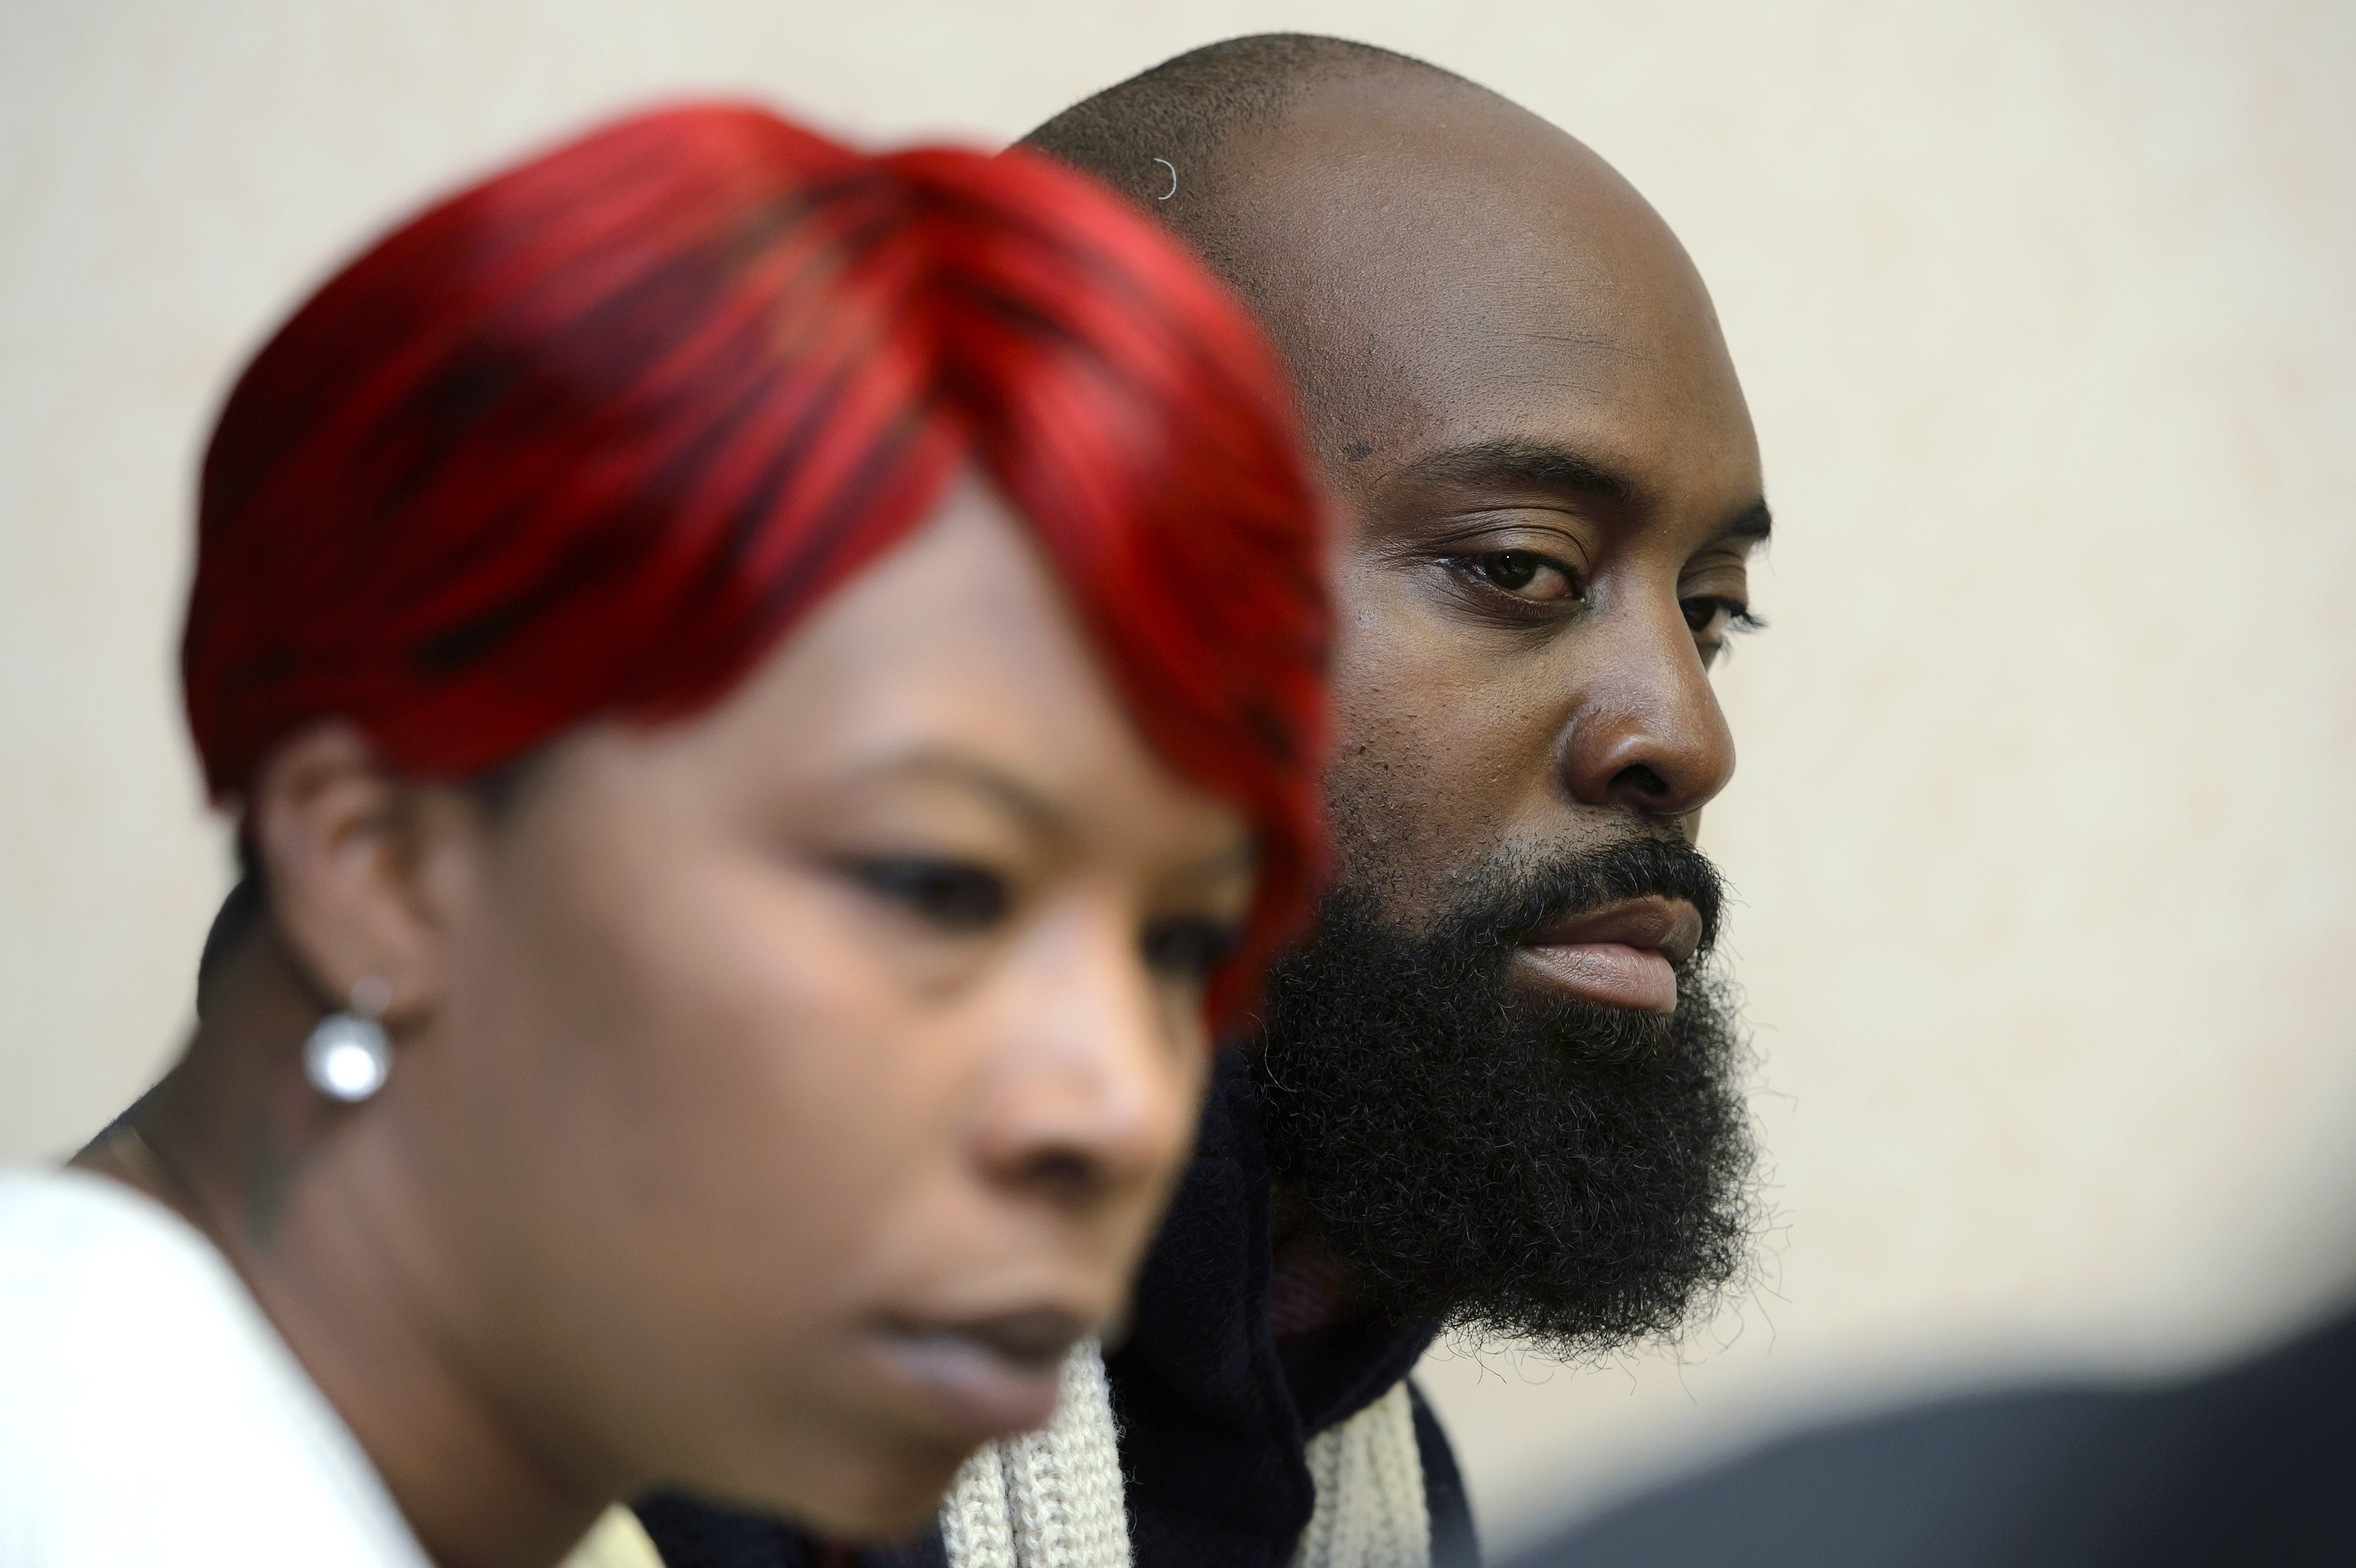 Lesley McSpadden and Michael Brown, Sr., parents of teenager Michael Brown, who was shot by a policeman in Ferguson, Missouri, speak during a press conference about the UN Committee Against Torture in Geneva, Switzerland on Nov. 12.